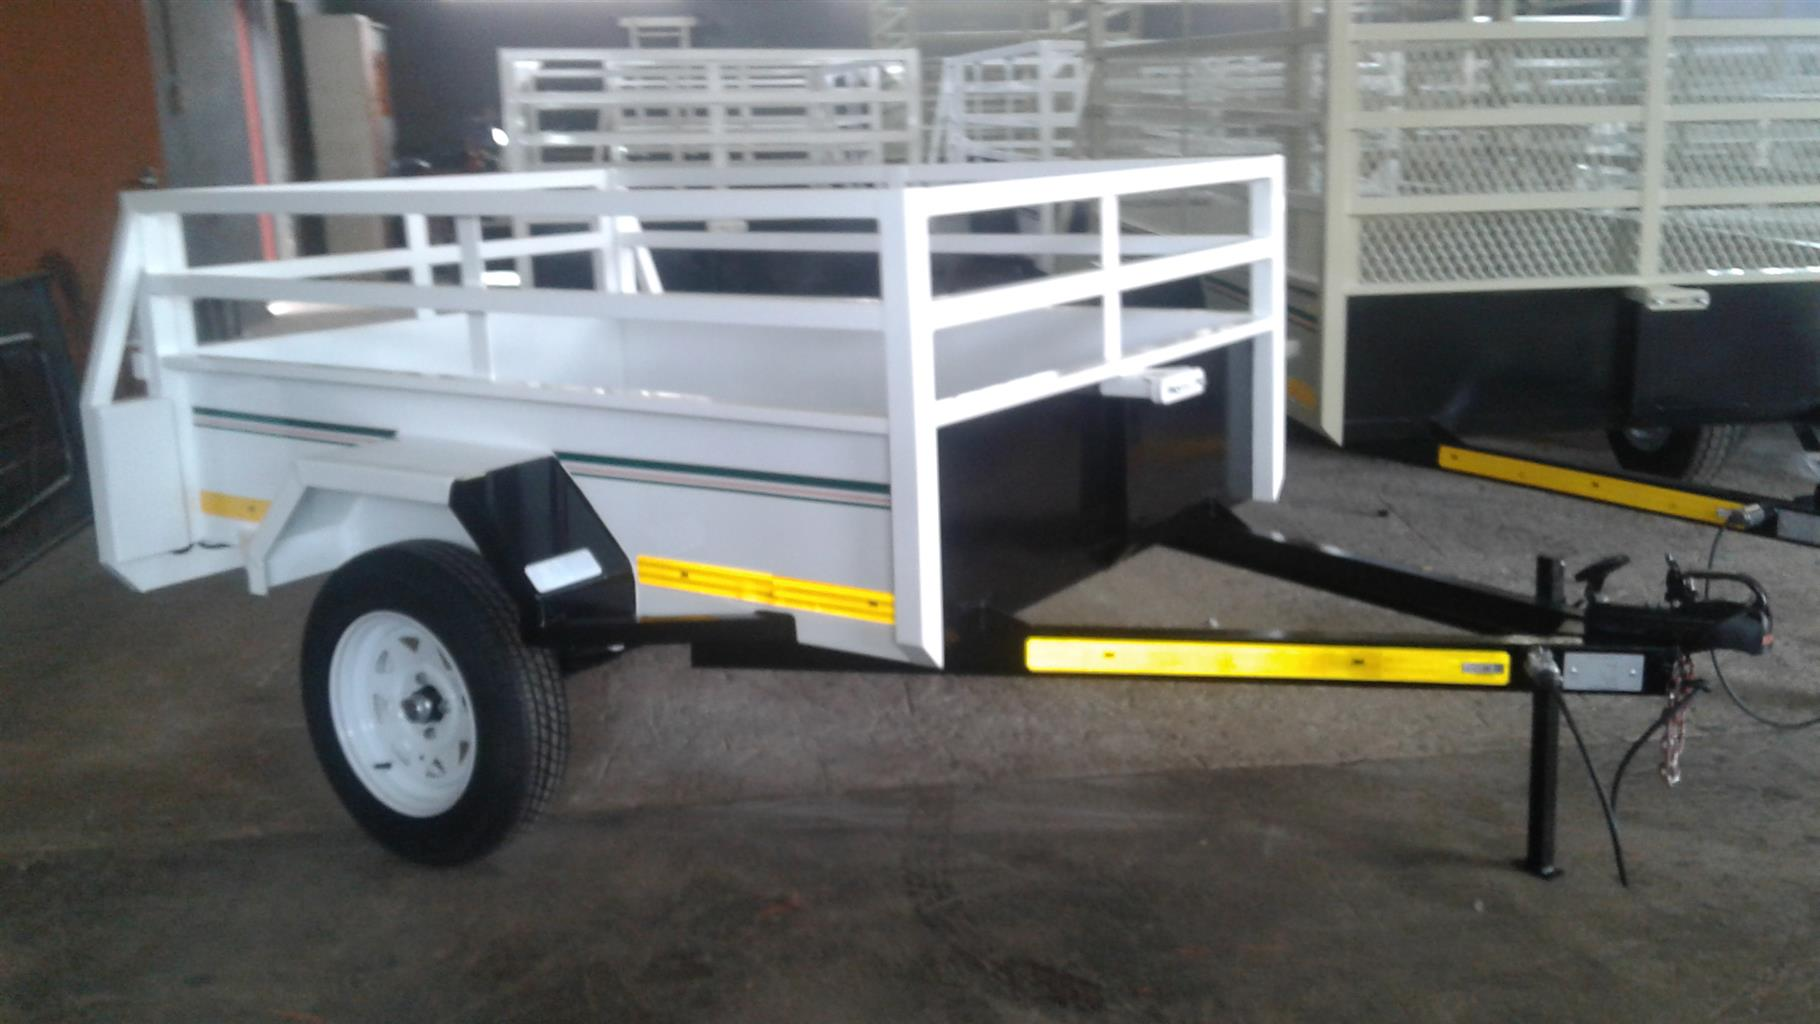 DINKY TRAILER FOR SALE, BRAND NEW, PAPERS INCL